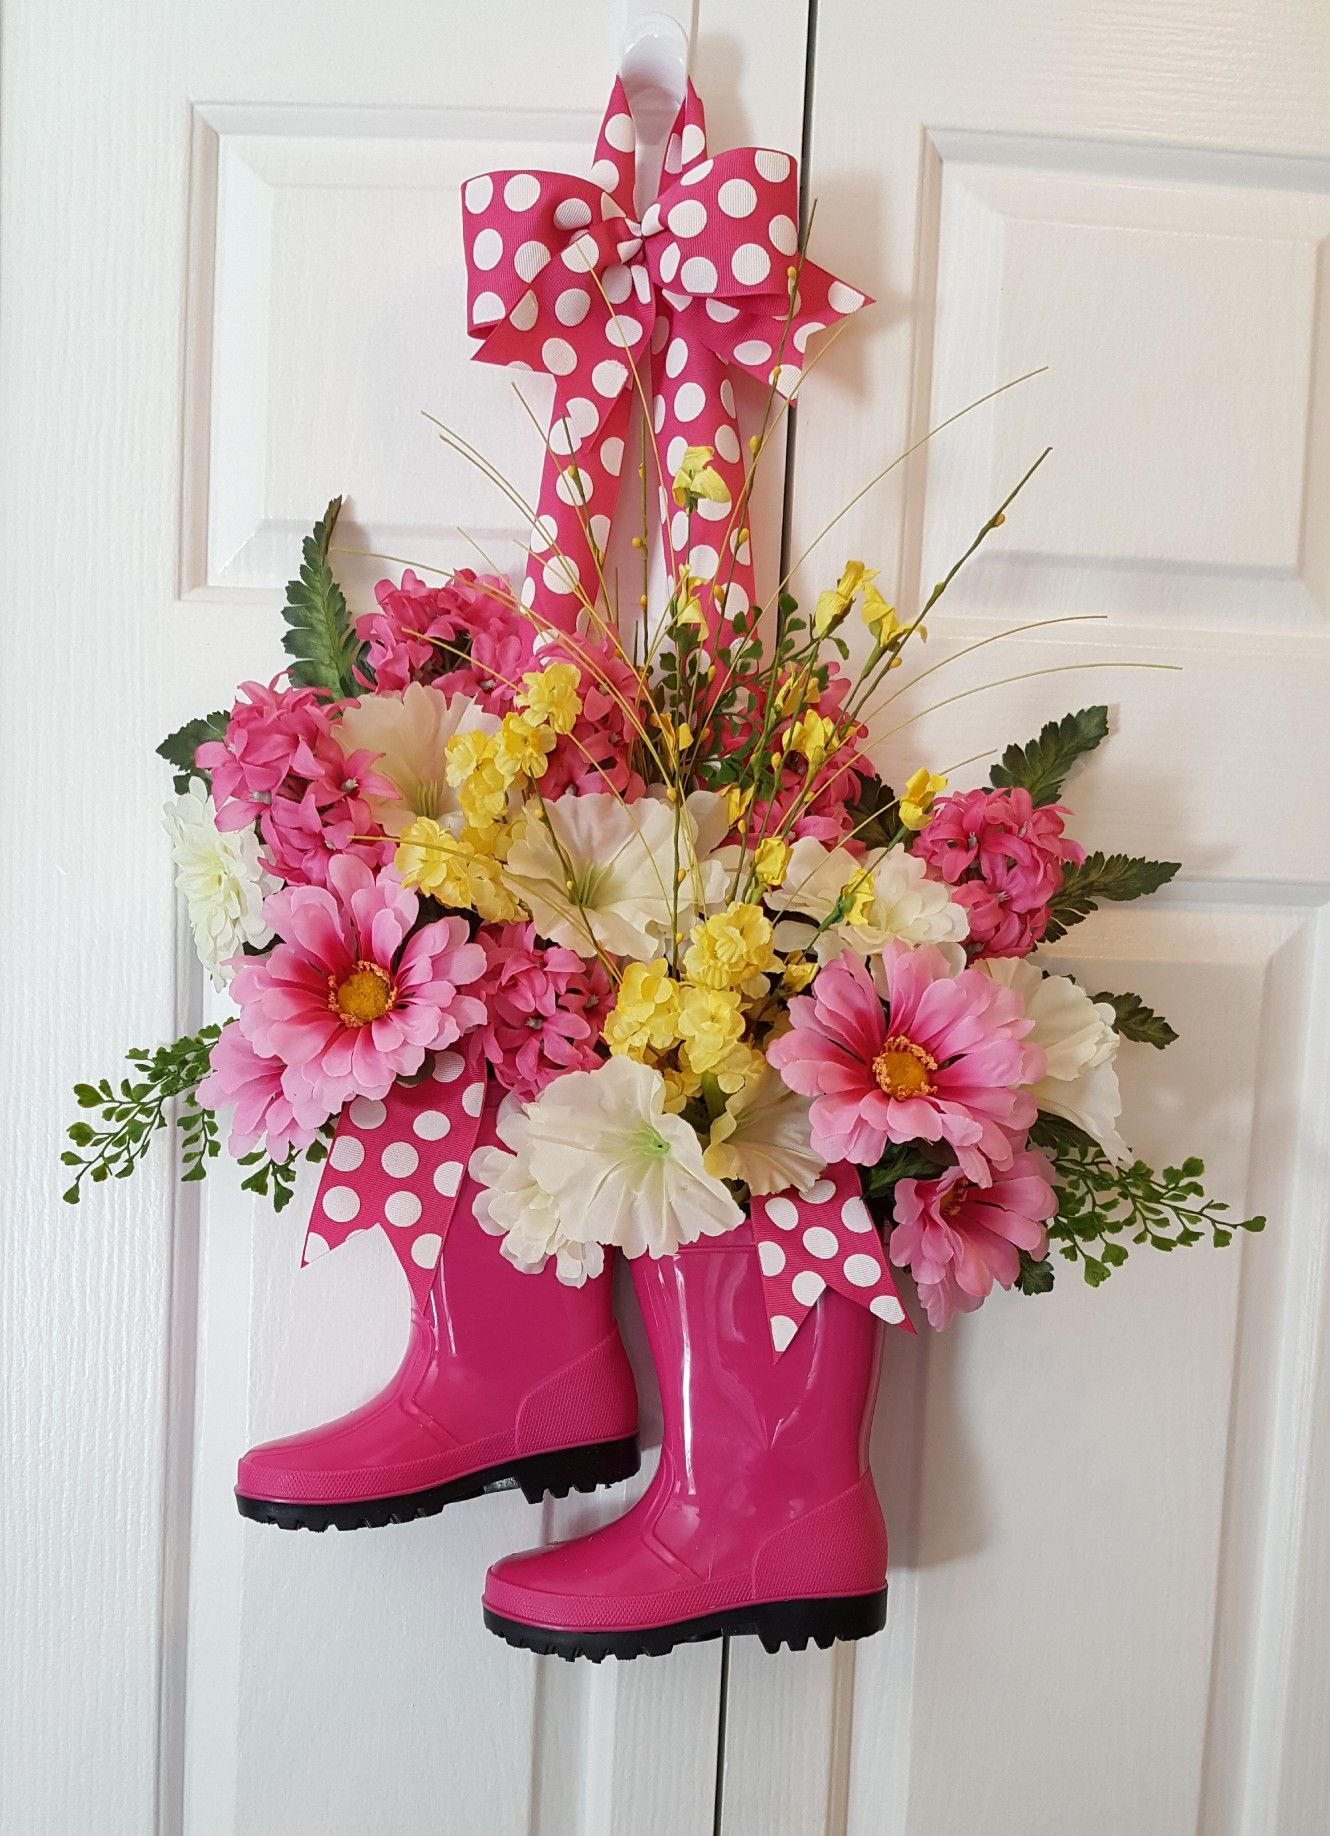 A Simple But Very Cute Wreath Idea For Spring Boots Filled With